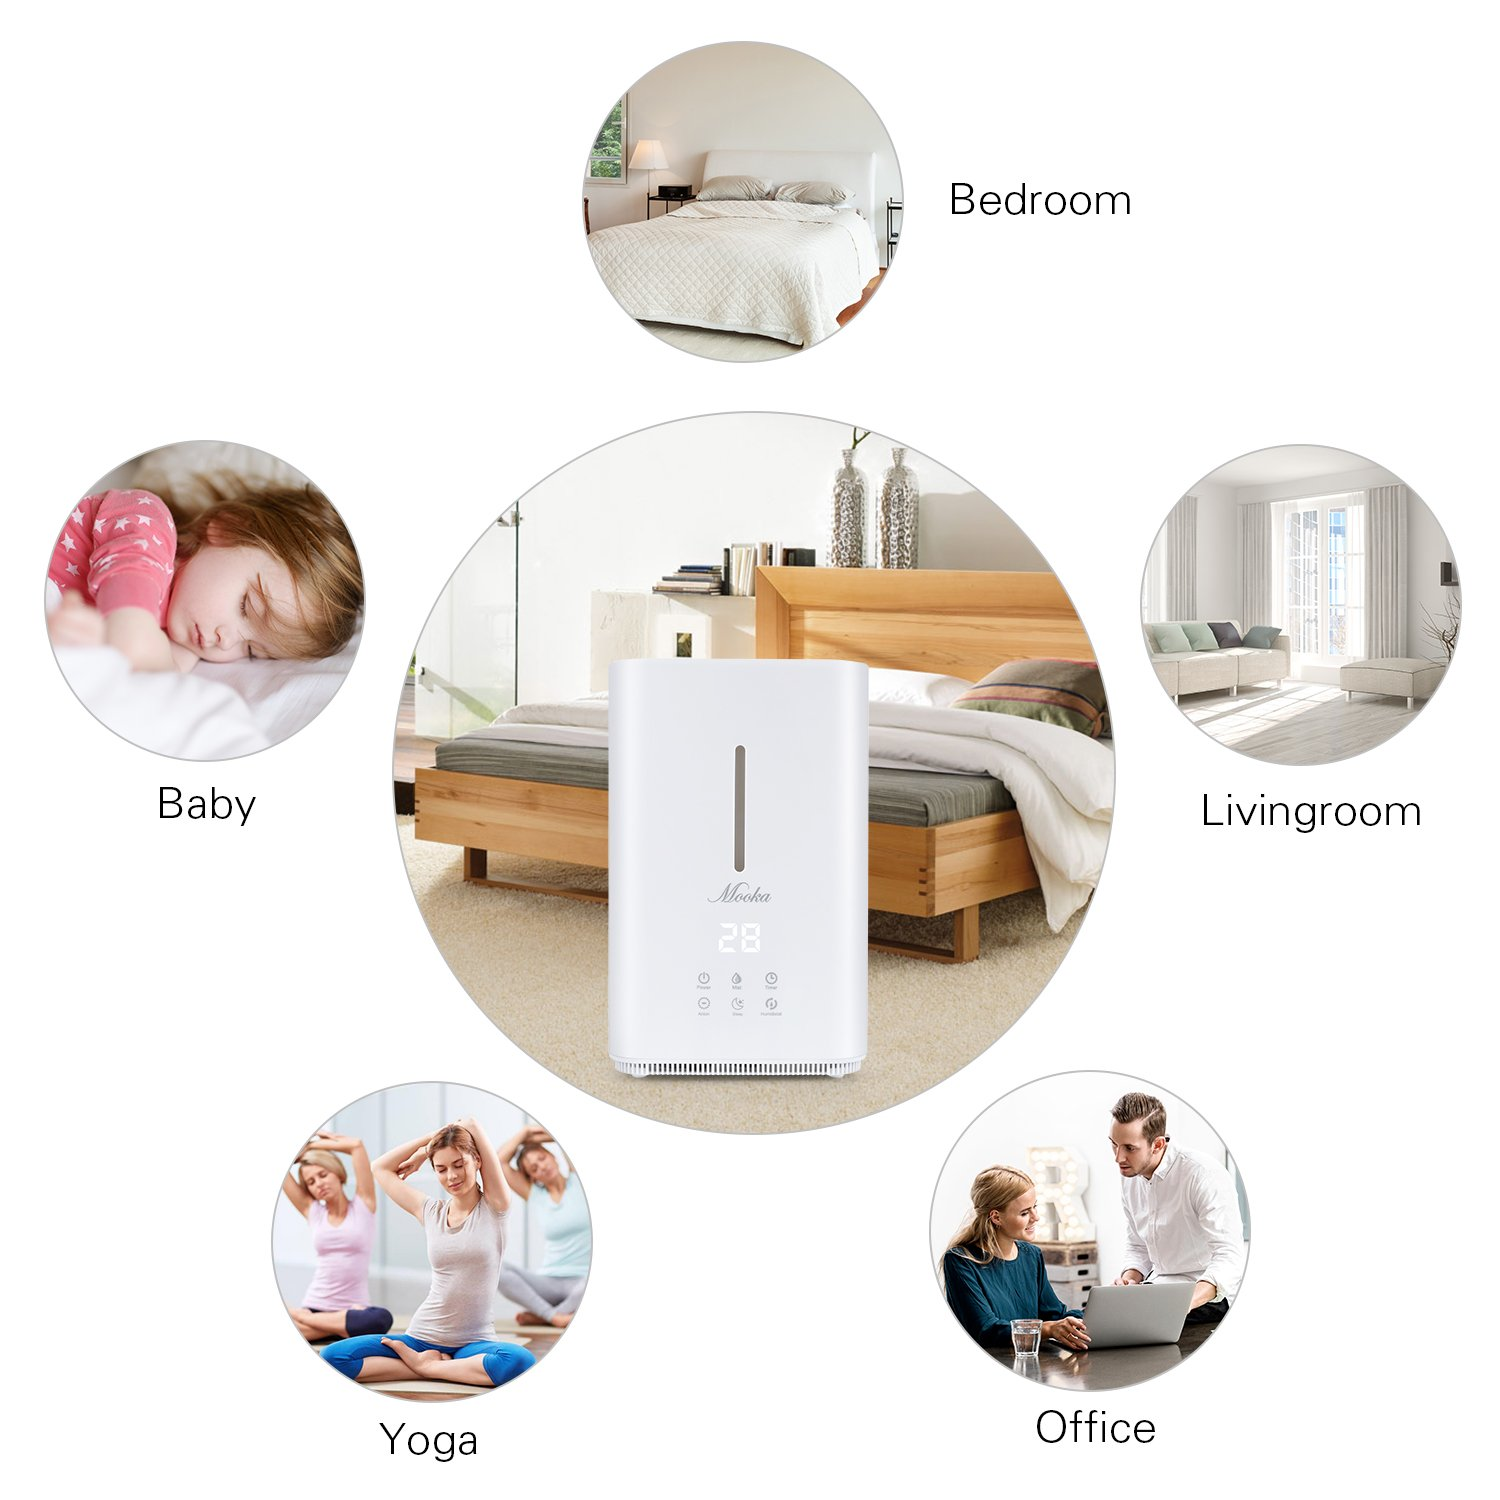 Auto Shut-Off Humidifier for Bedroom Mooka Top Fill Humidifier Baby Humidity Control 4L Large Capacity Office Sleep Mode Ultra Quiet Ultrasonic Cool Mist Humidifier Real-time Display